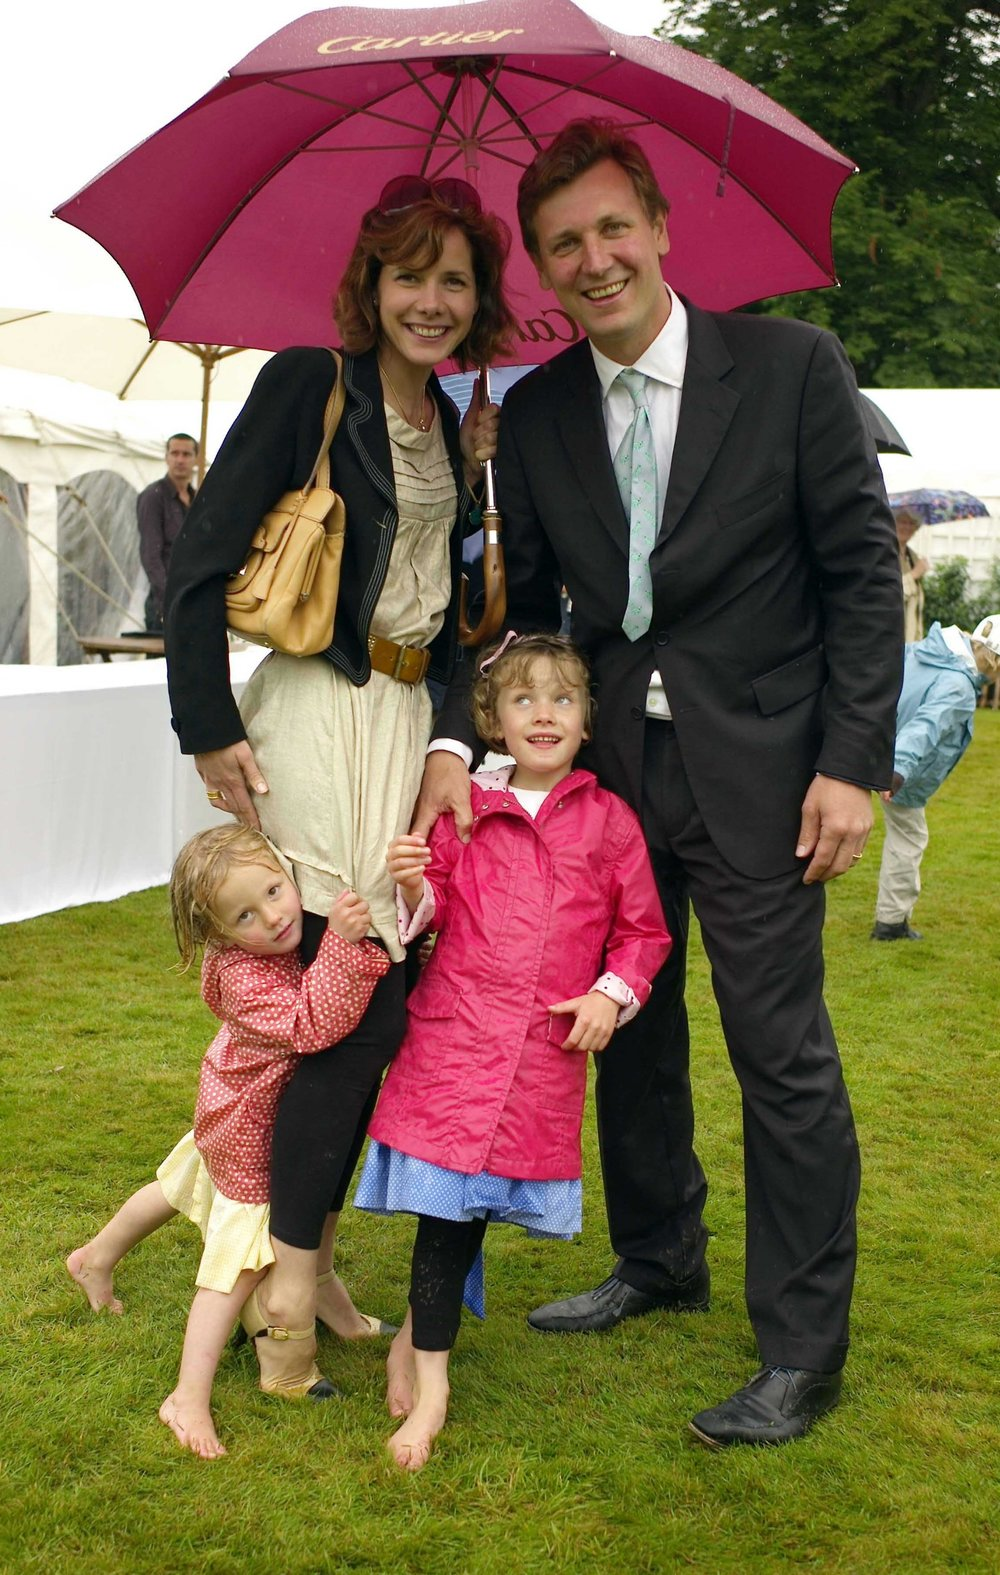 Darcey photographed a few years ago with her husband Angus and daughters Zoe and Phoebe